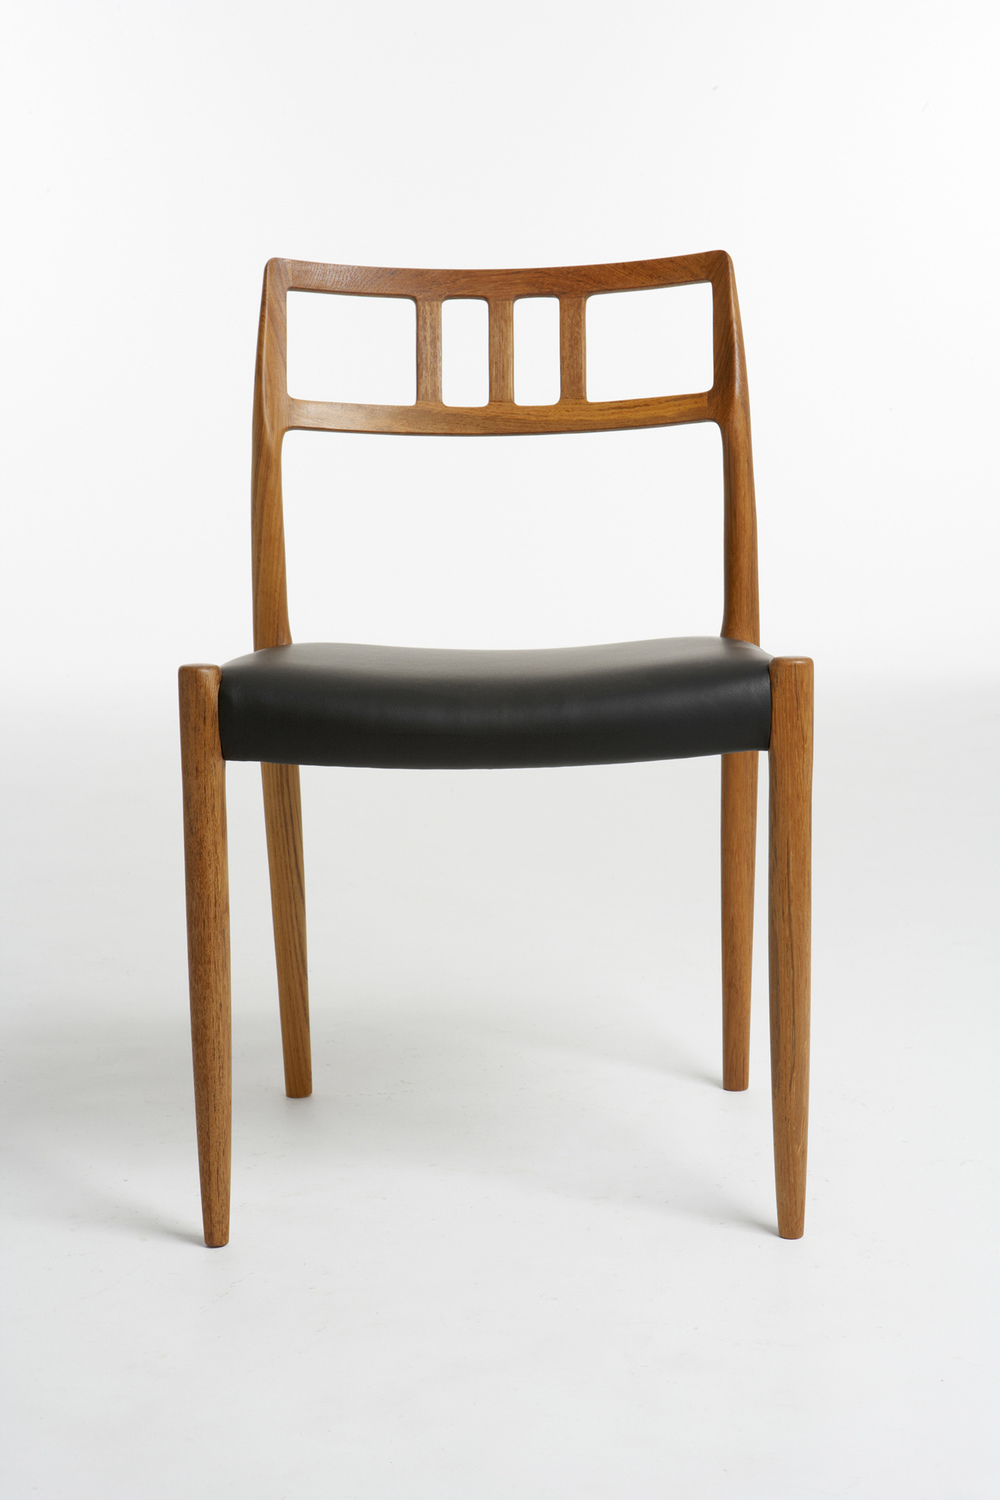 N O Moller 1966 Dining Chair